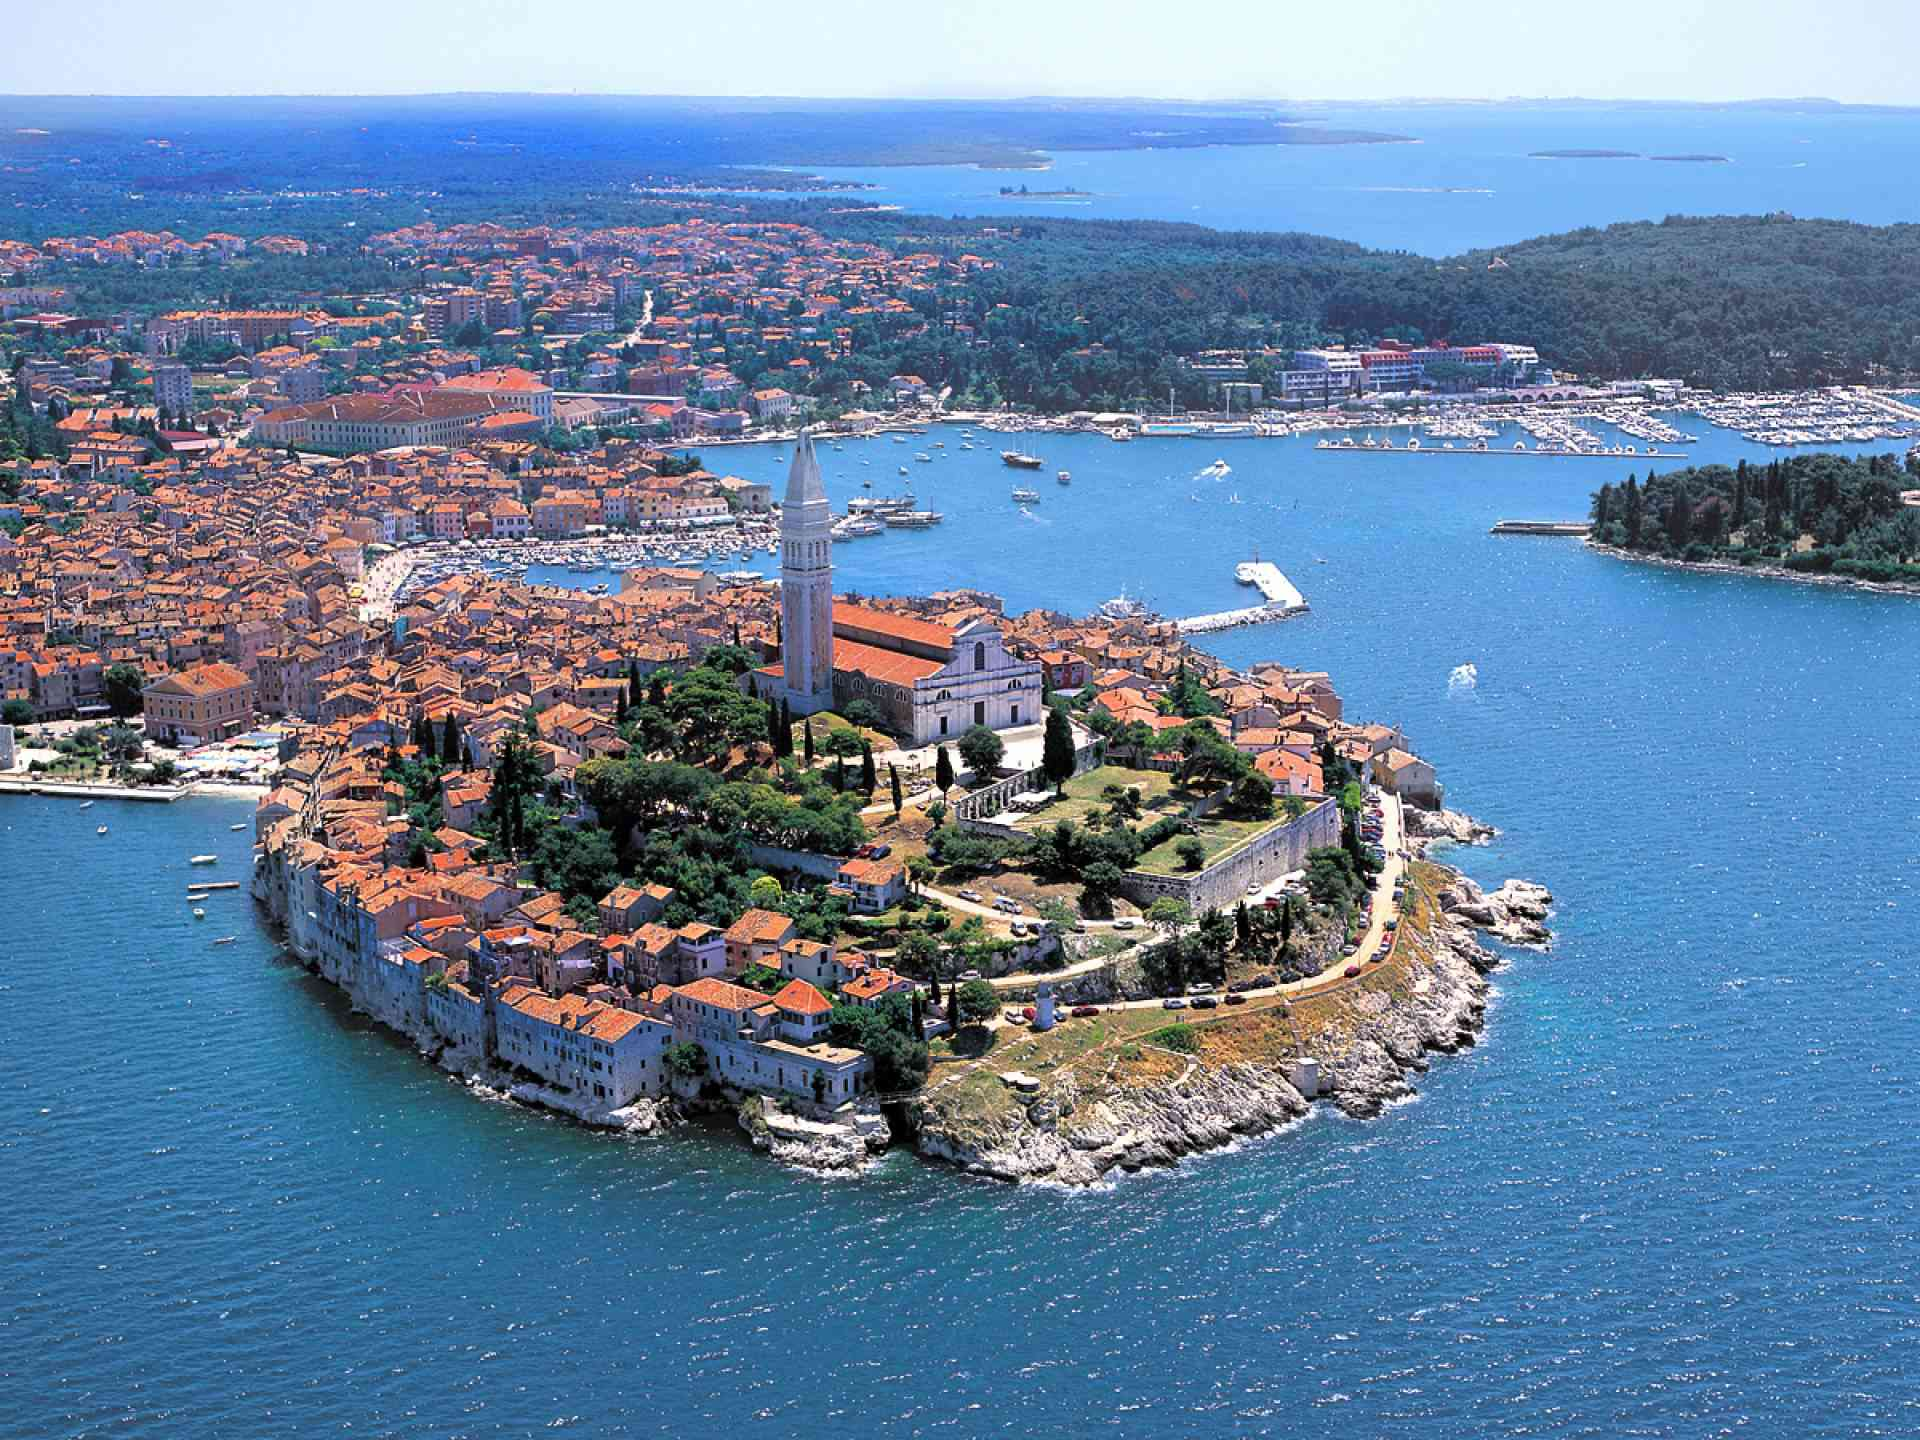 Rovinj, Croatia - Monterrasol private tours to Rovinj, Croatia. Travel agency offers custom private car tours to see Rovinj in Croatia. Order custom private tour to Rovinj with departure date on request.